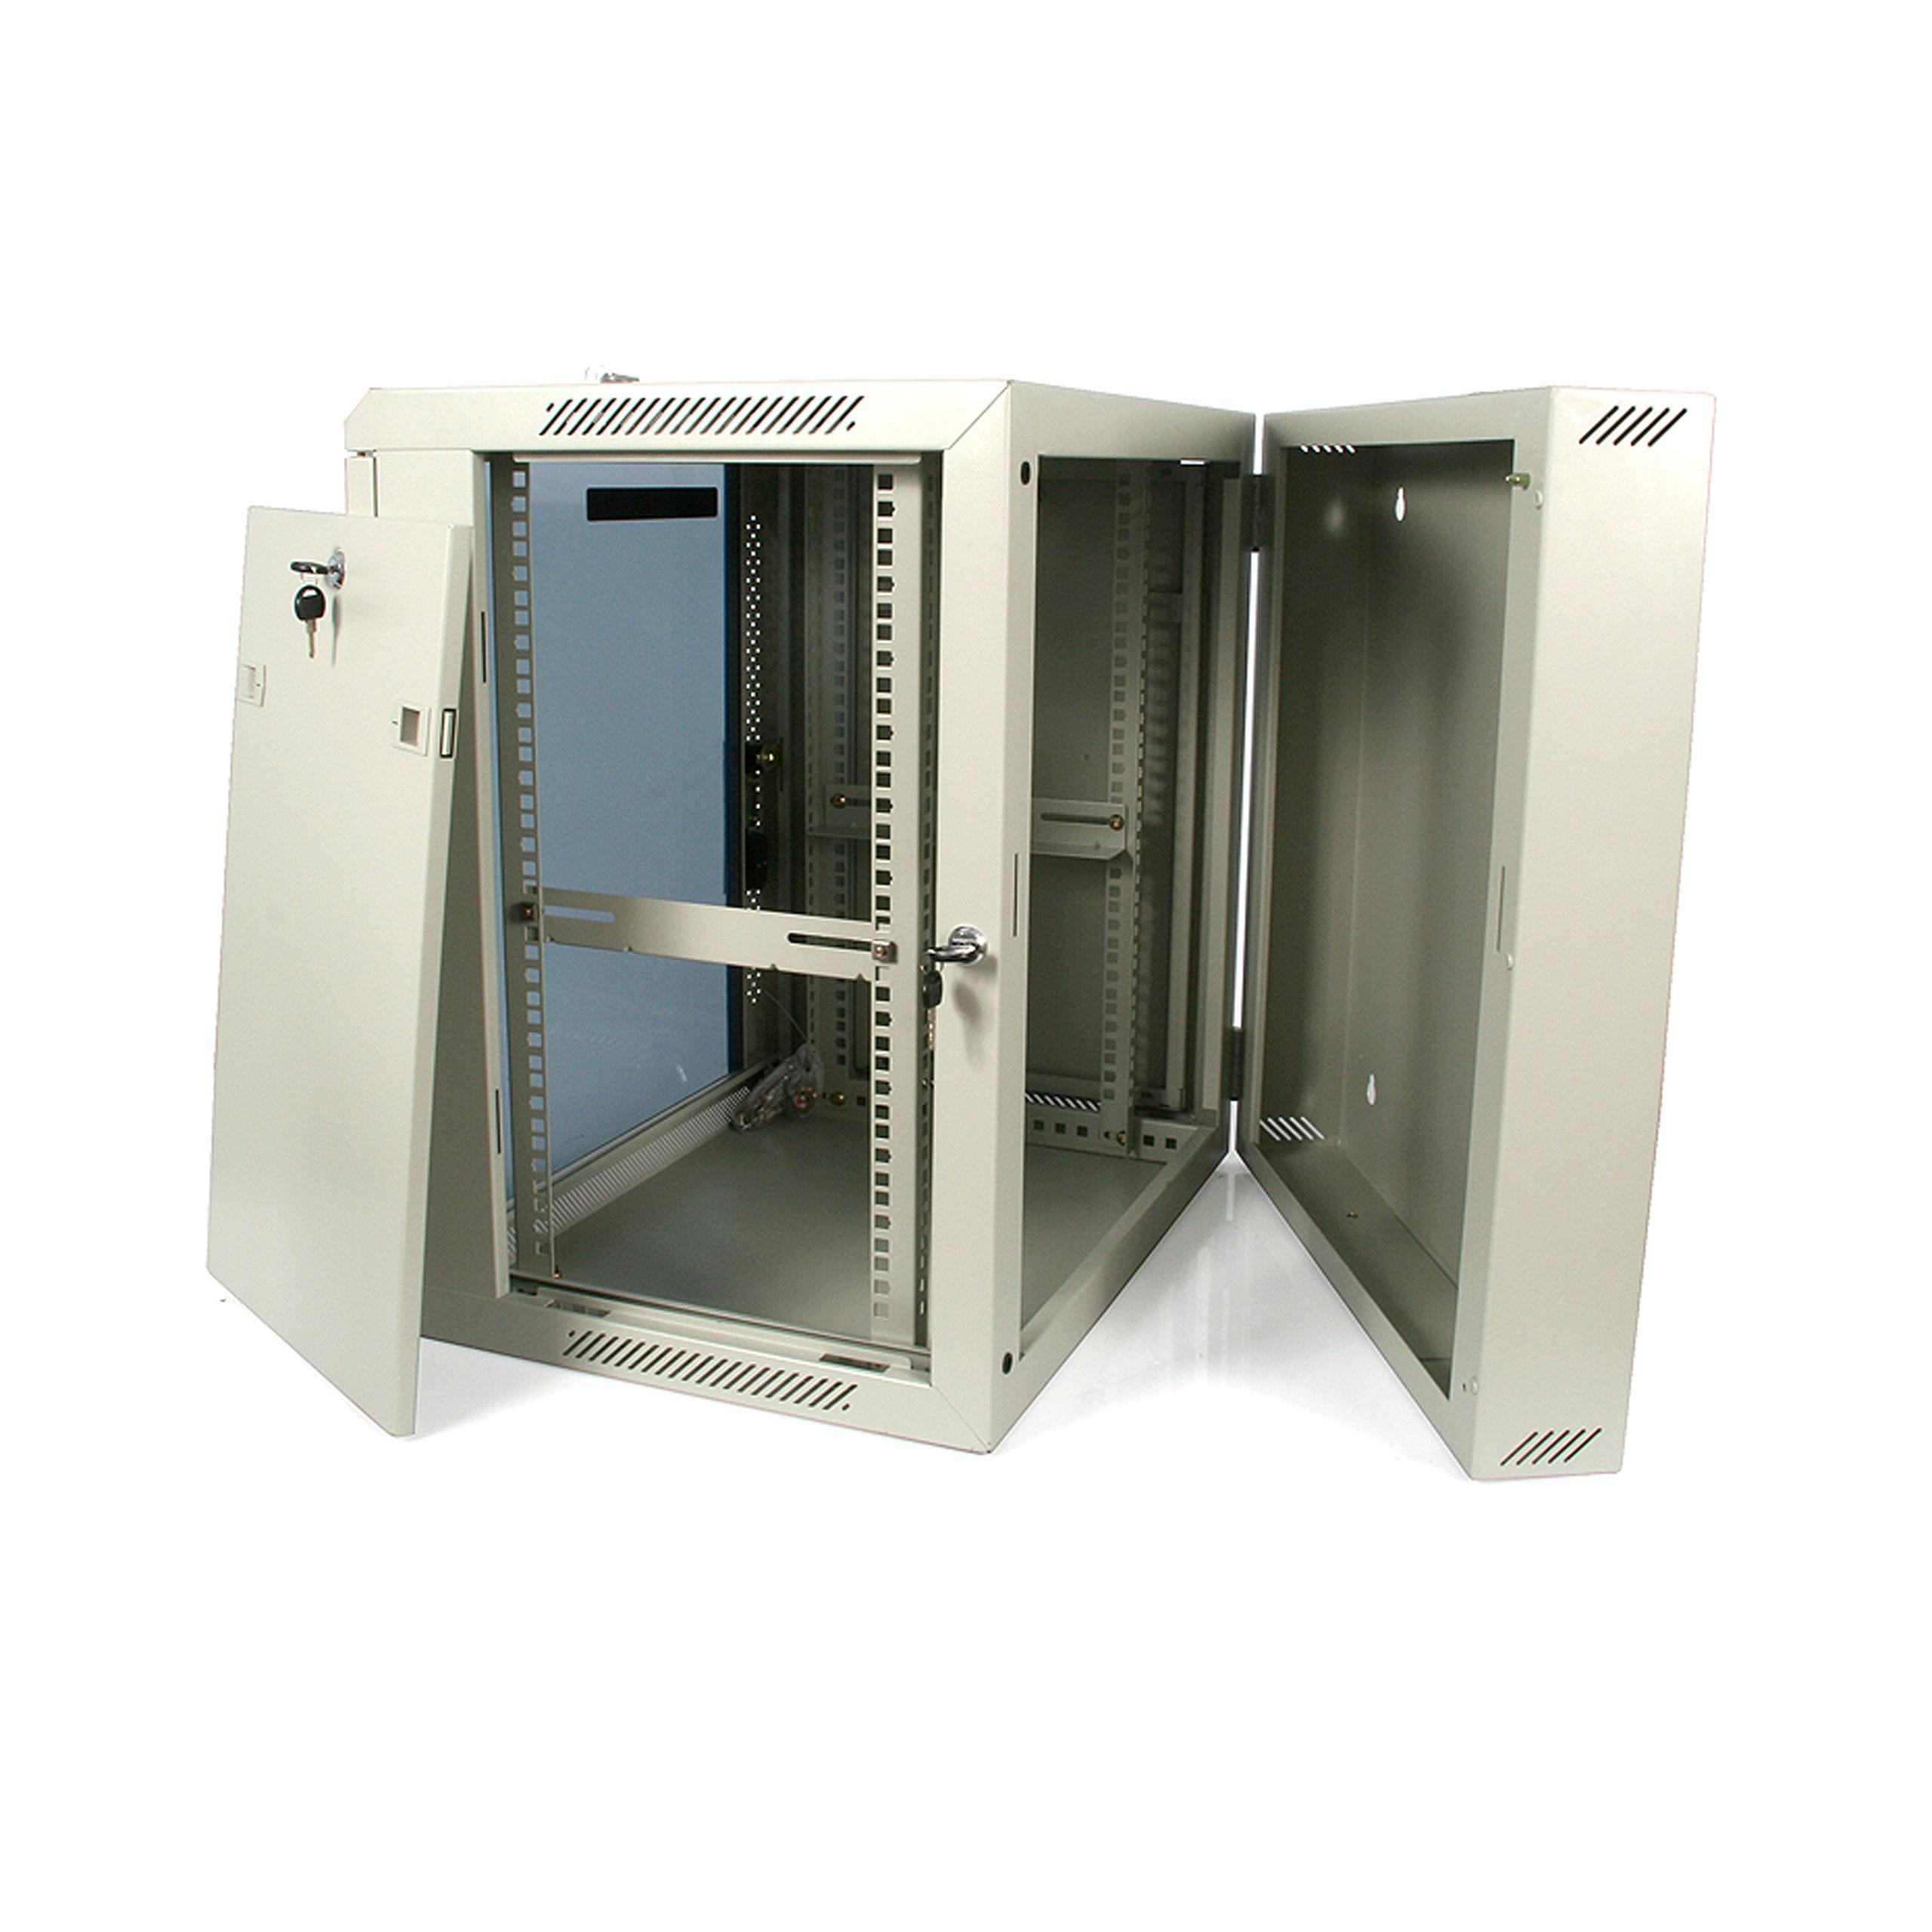 p with asp door data server cabinet networkdata glass rack eagle network